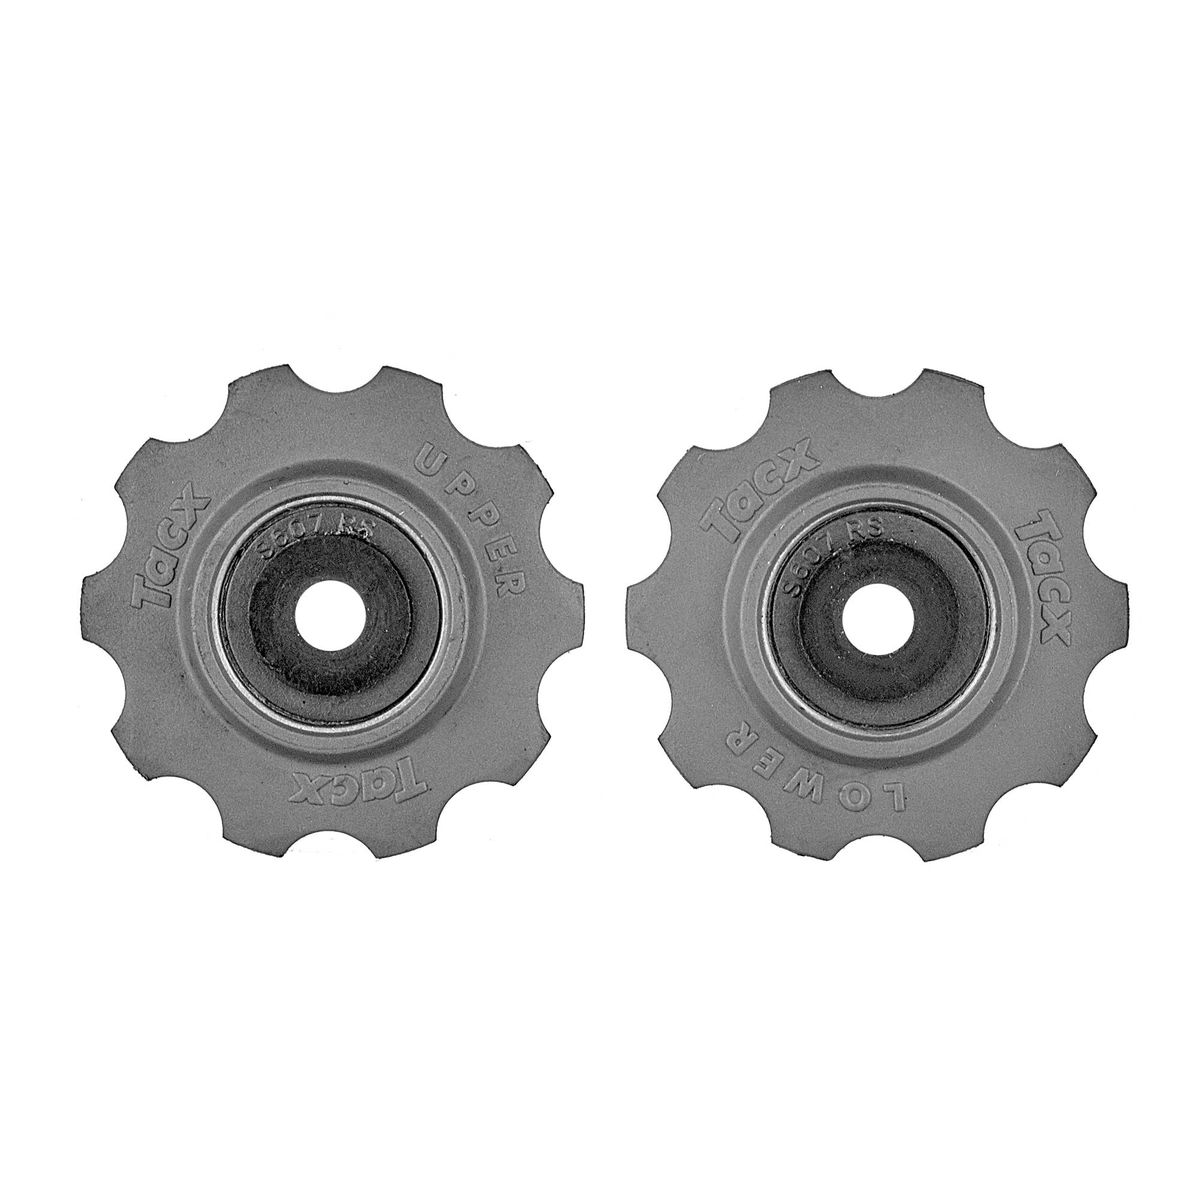 T4020 10-tooth derailleur wheels